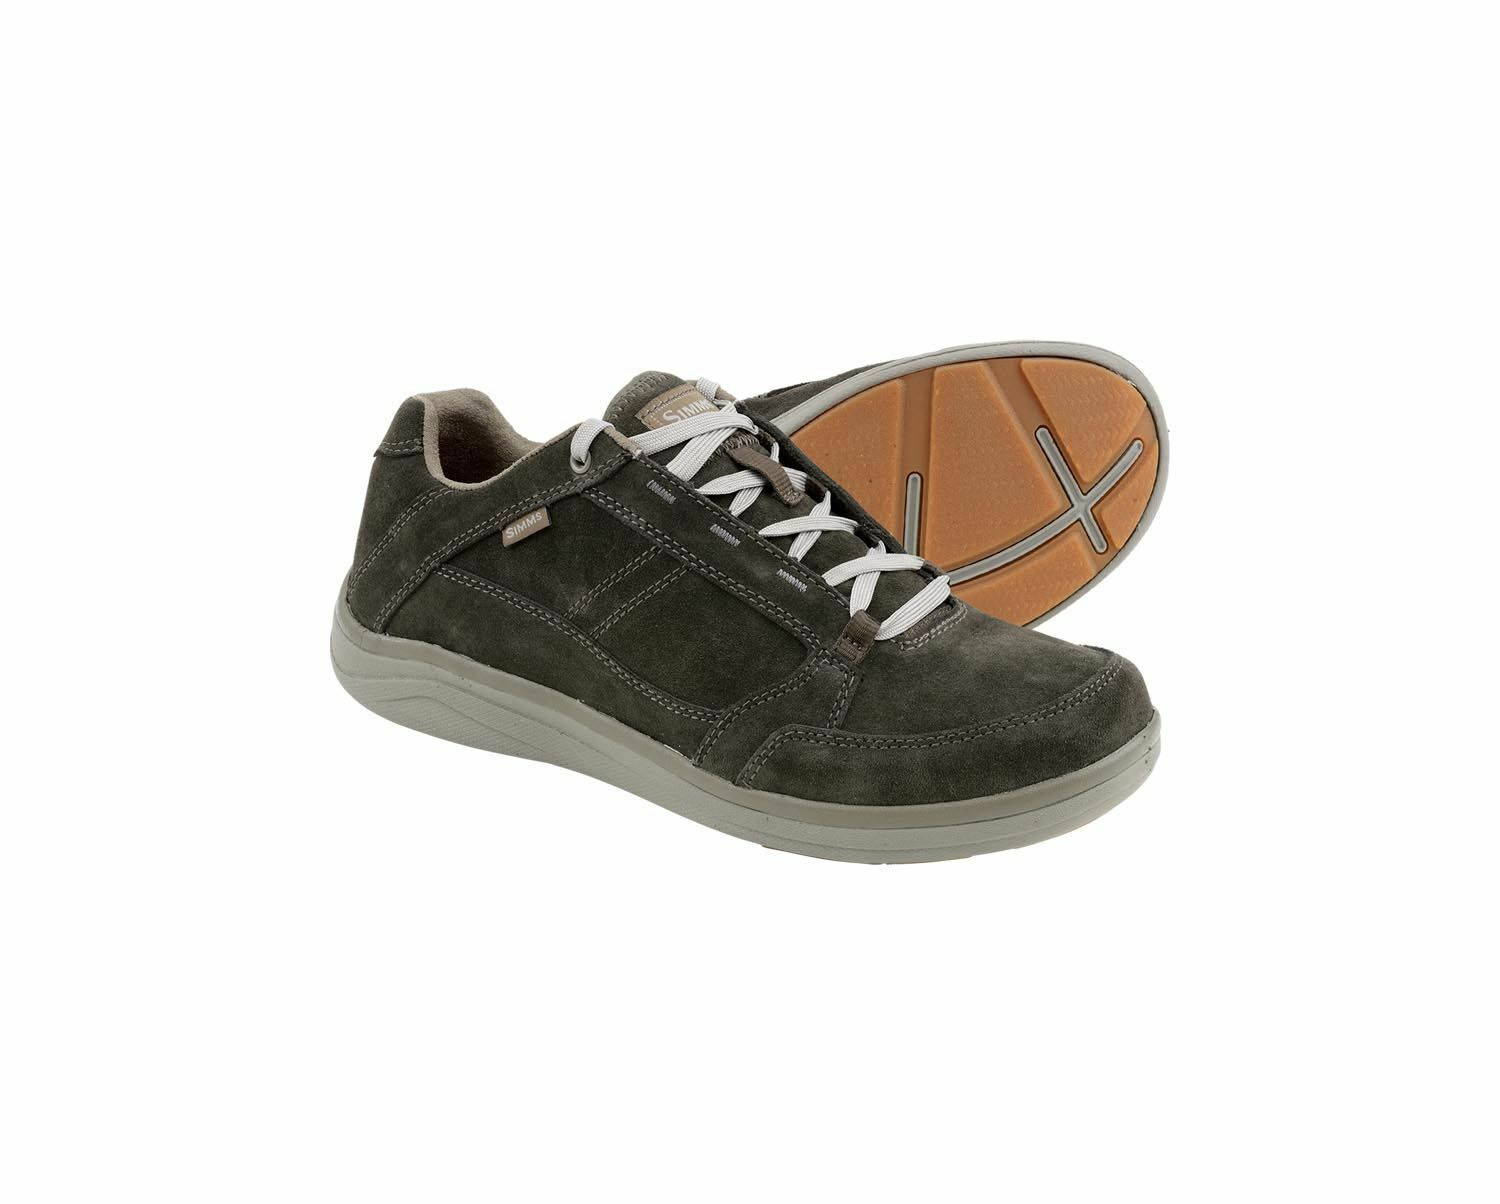 Simms Westshore Leather shoes Dark Olive - Size  10.5 -CLOSEOUT  will make you satisfied